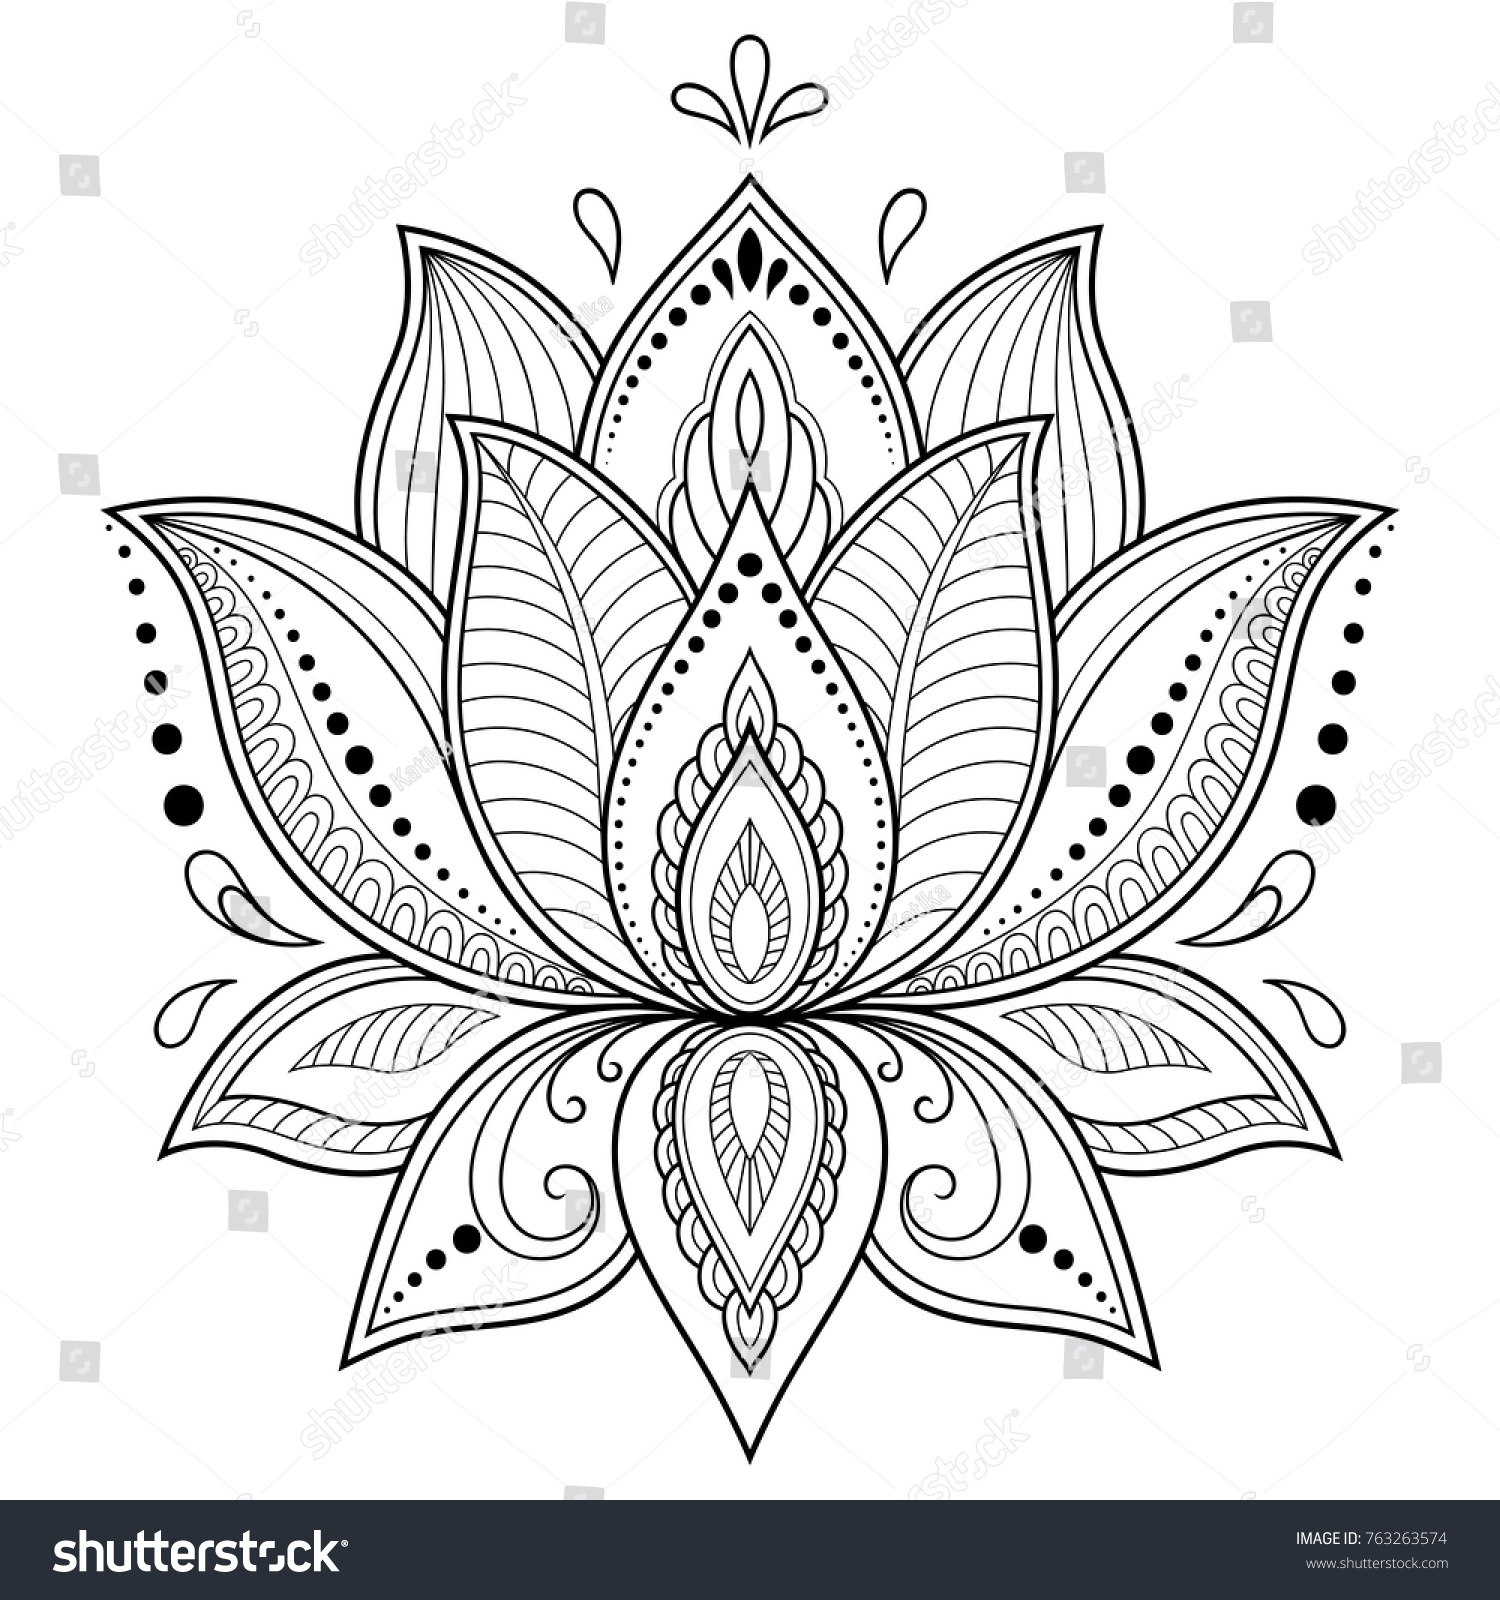 Mehndi lotus flower pattern henna drawing stock vector royalty free mehndi lotus flower pattern for henna drawing and tattoo decoration in ethnic oriental indian izmirmasajfo